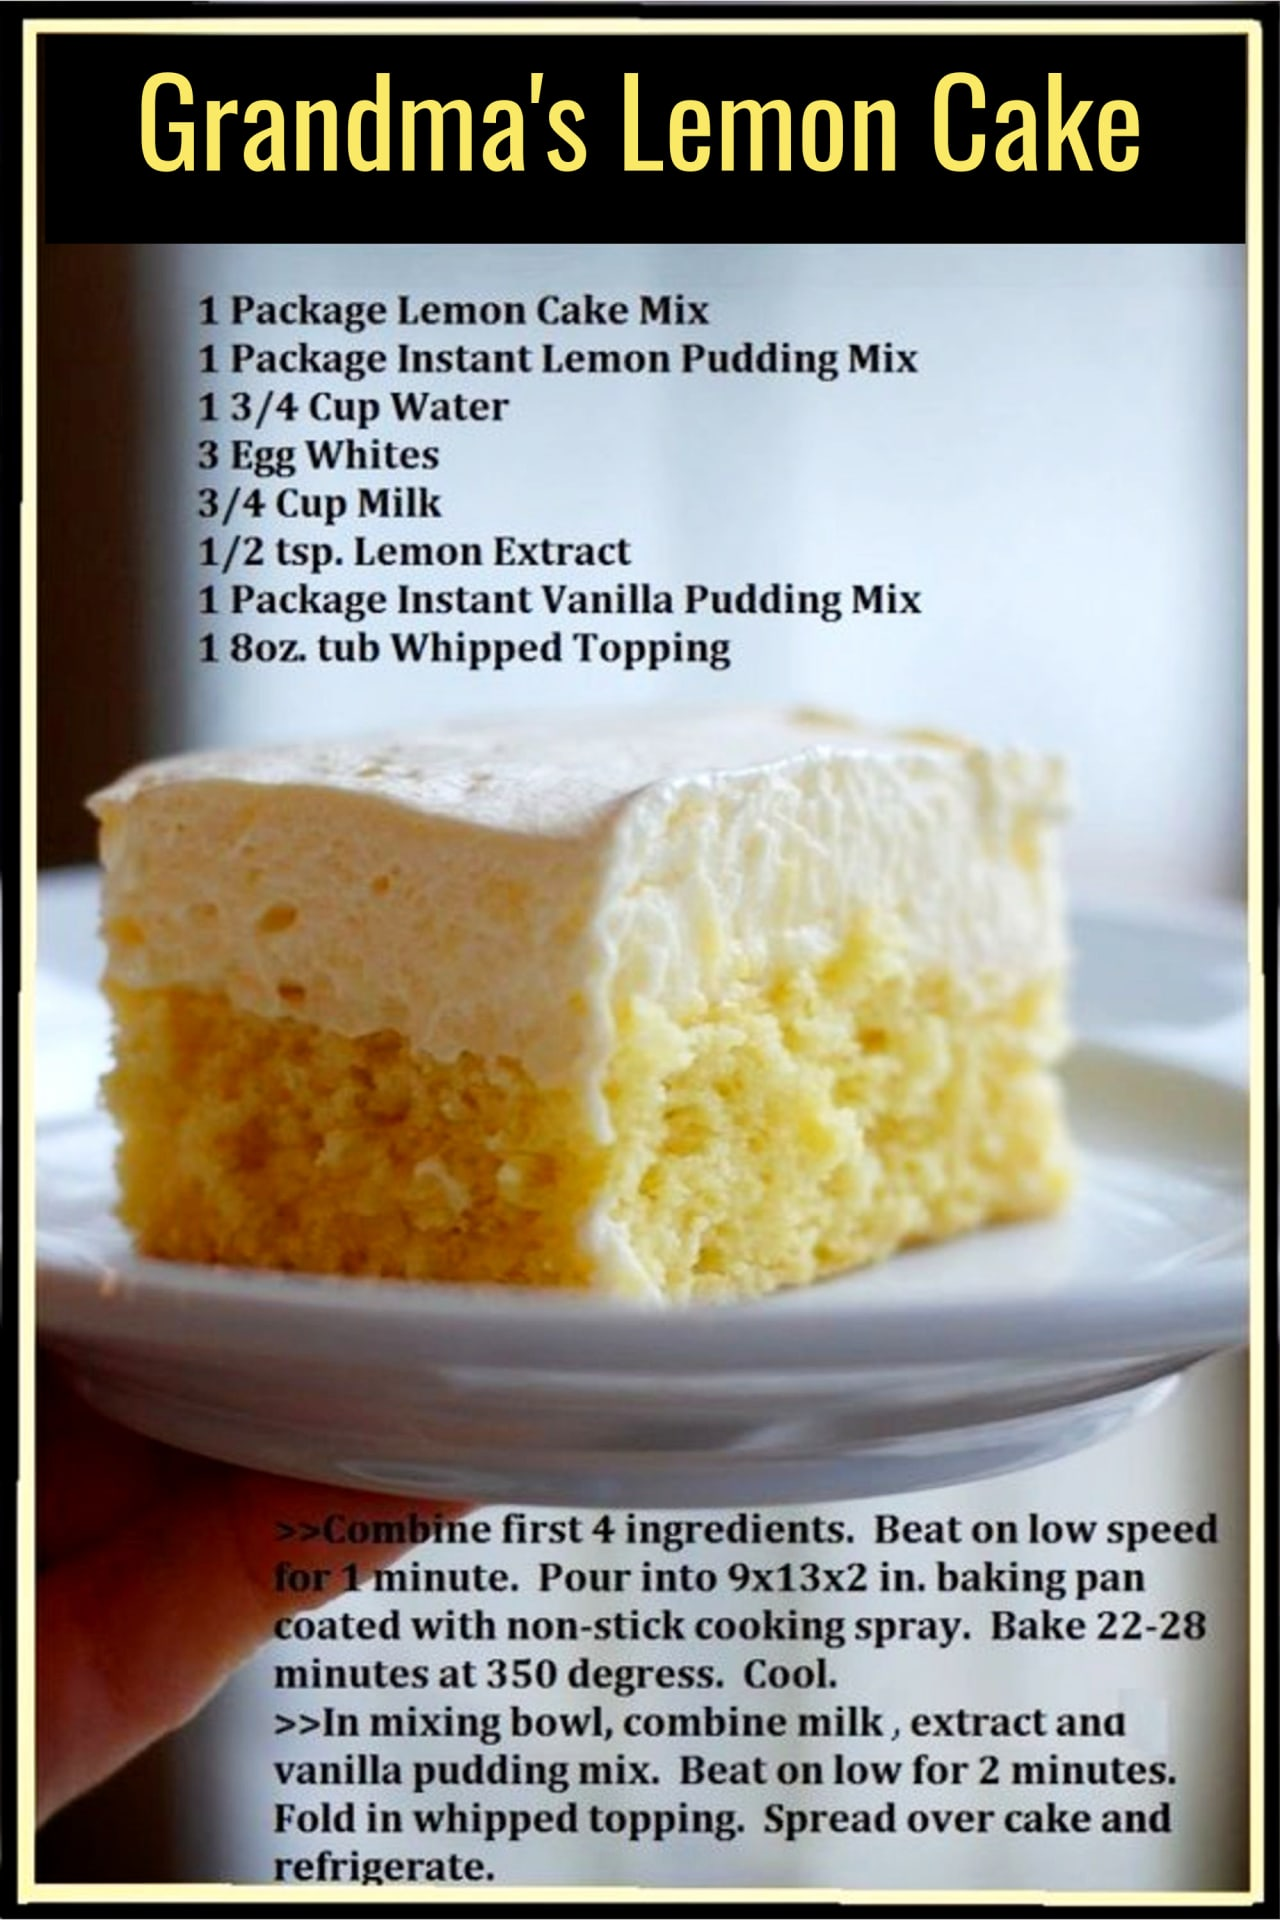 Grandma's Desserts - Dessert recipes that your mom, your grandmother (or your lunch lady) used to make from scratch - Grandmas lemon cake recipe